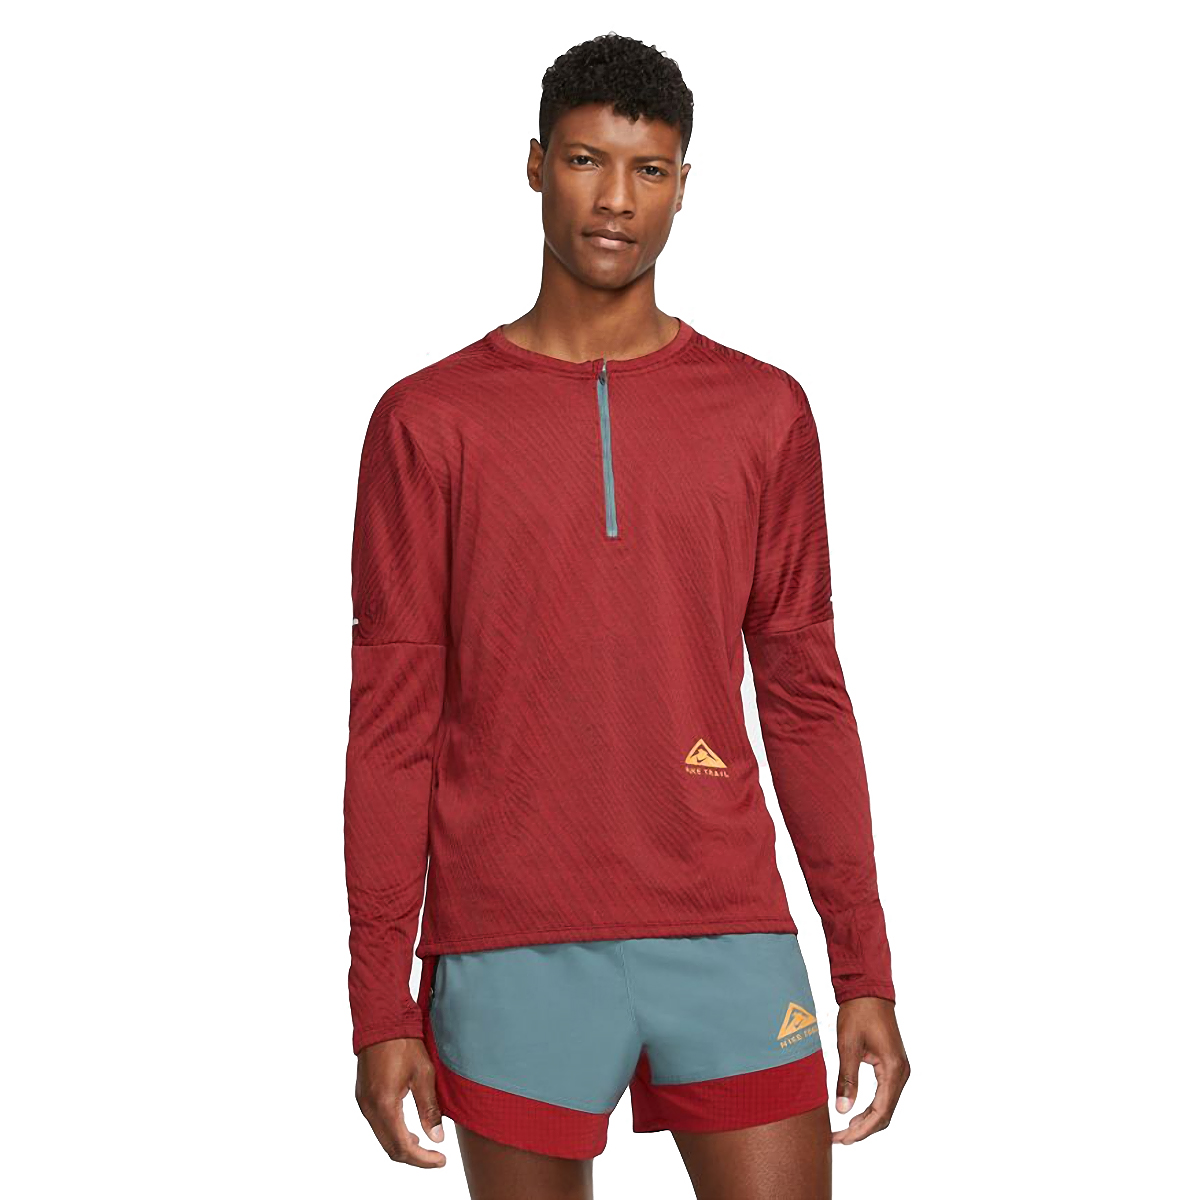 Men's Nike Dri-FIT Element 1/2-Zip Trail Running Top - Color: Dark Cayenne/Bronze Eclipse - Size: S, Dark Cayenne/Bronze Eclipse, large, image 1